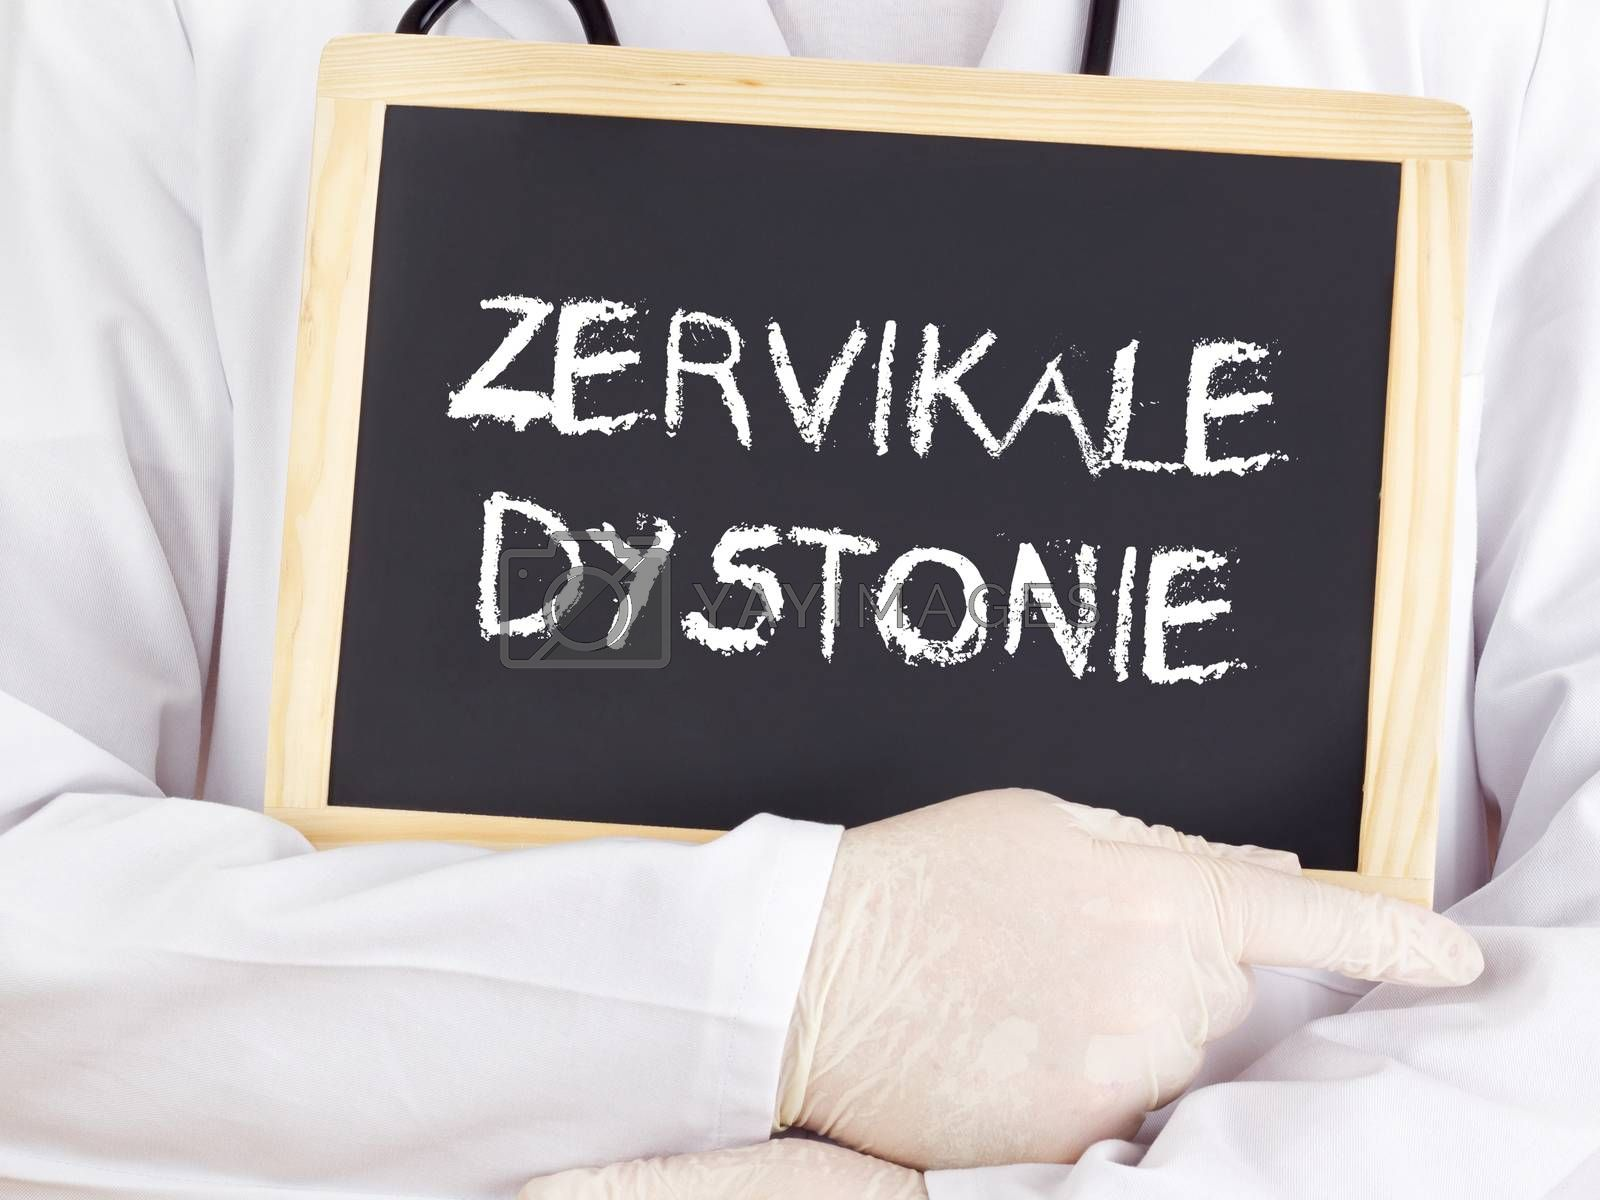 Doctor shows information: Cervical dystonia in german